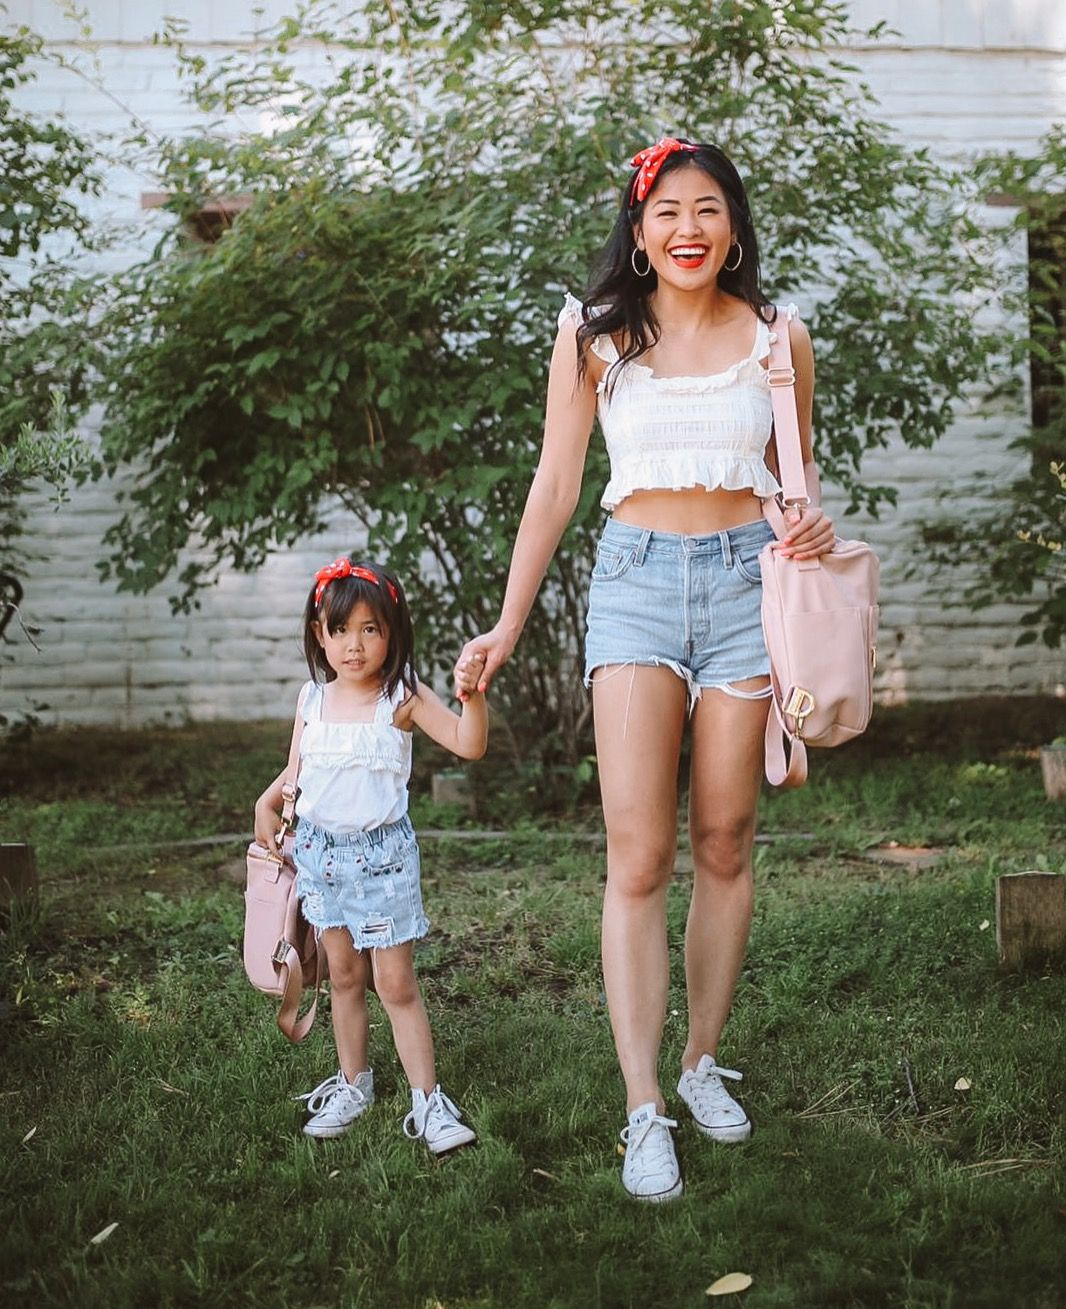 Two Ways to Shop My Looks Cute outfits for kids